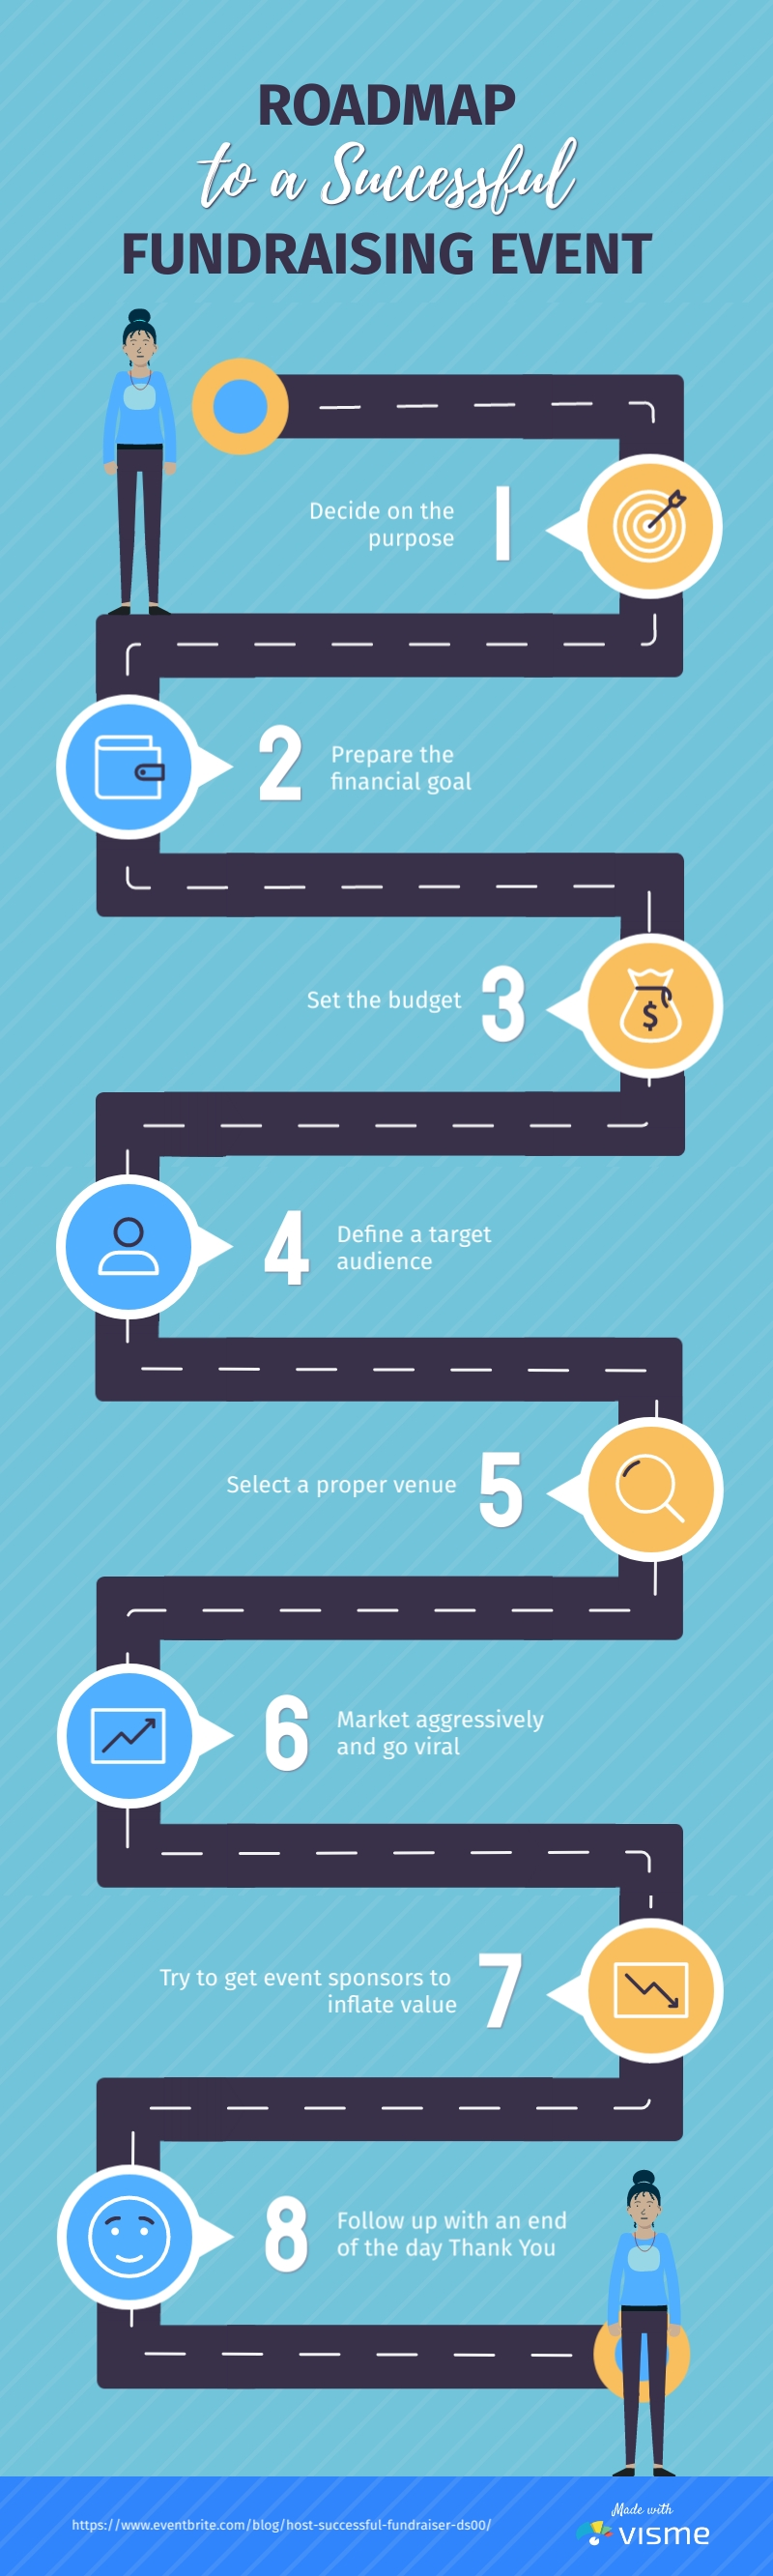 Roadmap To A Successful Fundraising Event - Infographic Template